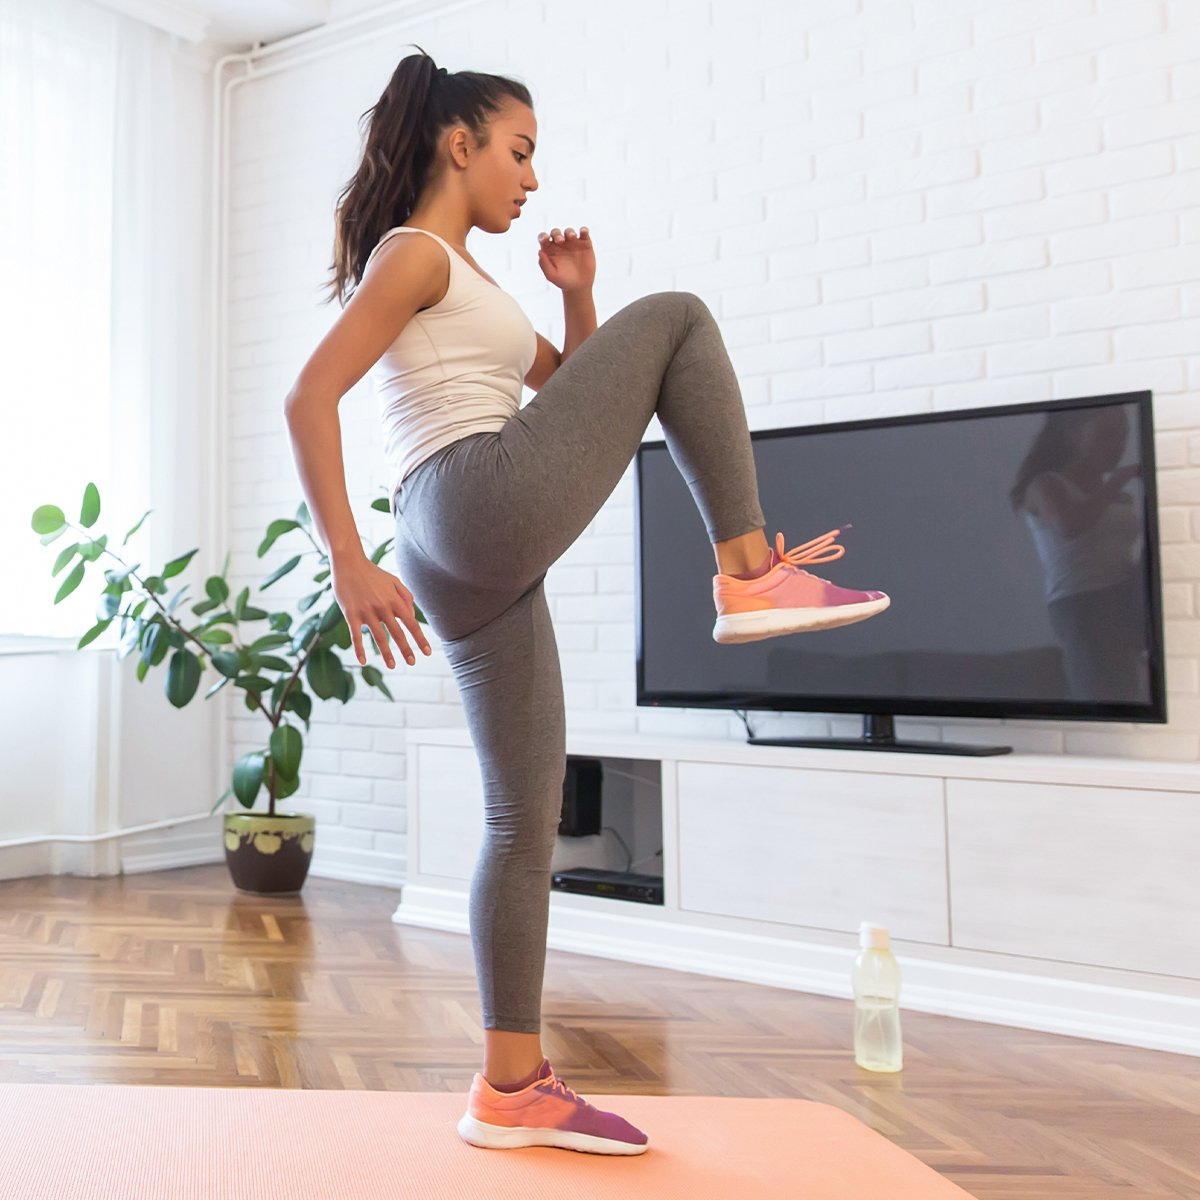 HIIT at Home: 20-Minute Interval Workouts